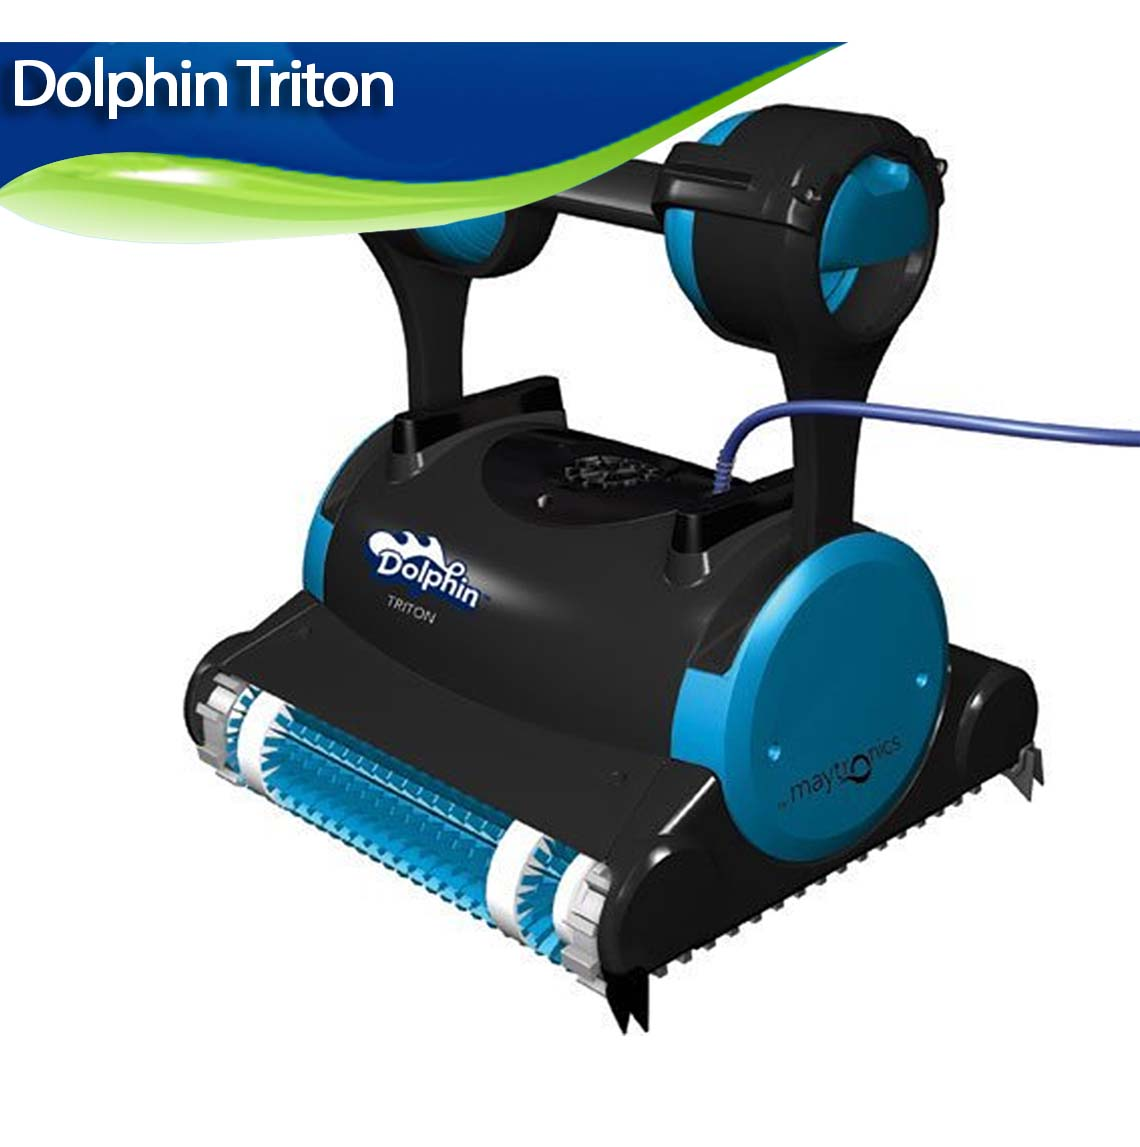 Dolphin Triton Review Best Robotic Pool Cleaners